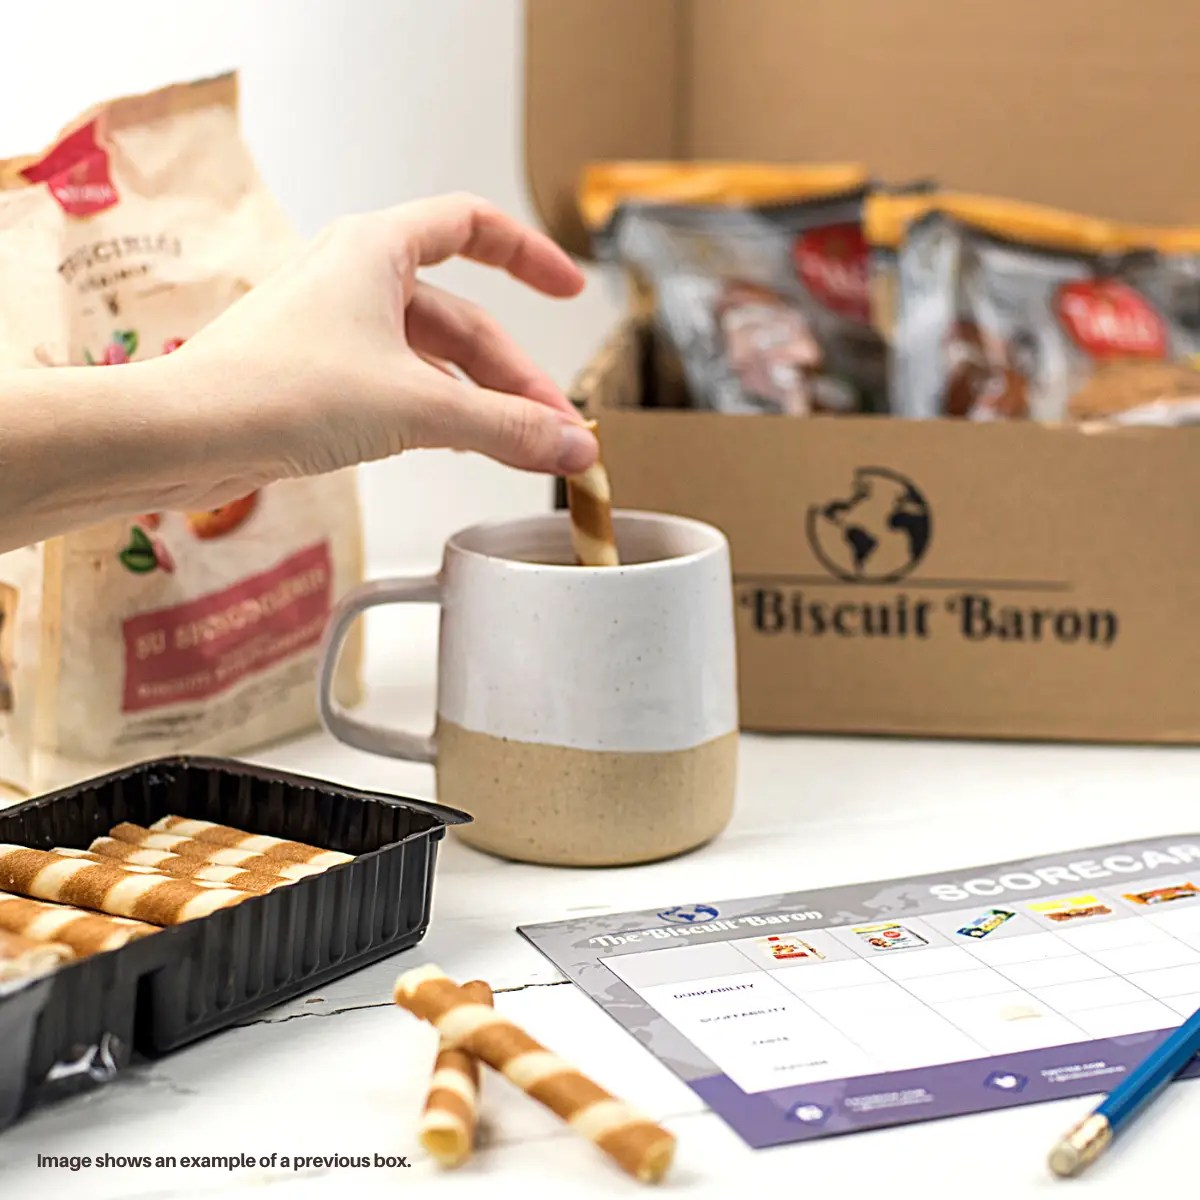 unique gift The Biscuit Baron Subscription Box Biscuits Box